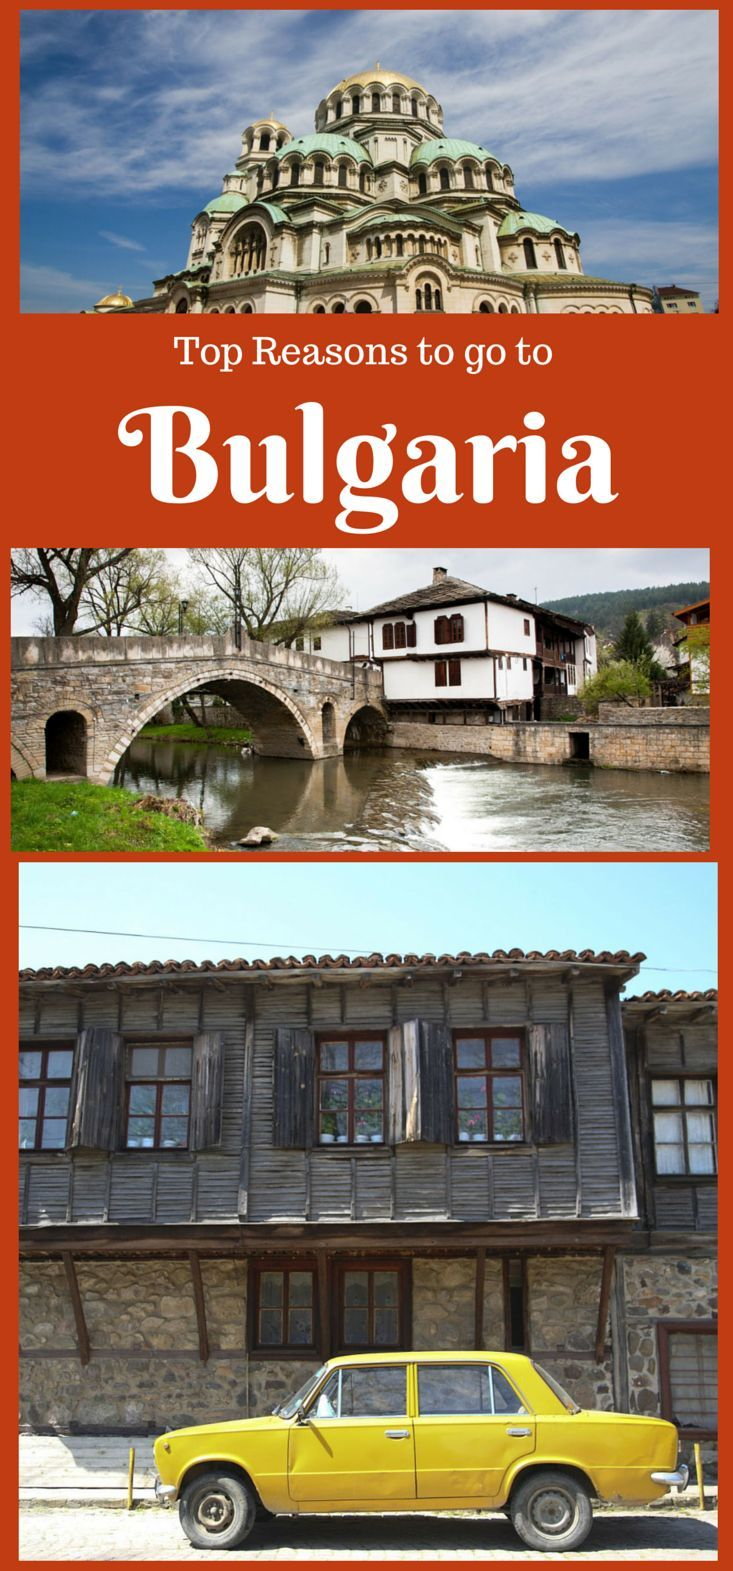 Read: The Top 7 Reasons to go Back to Bulgaria